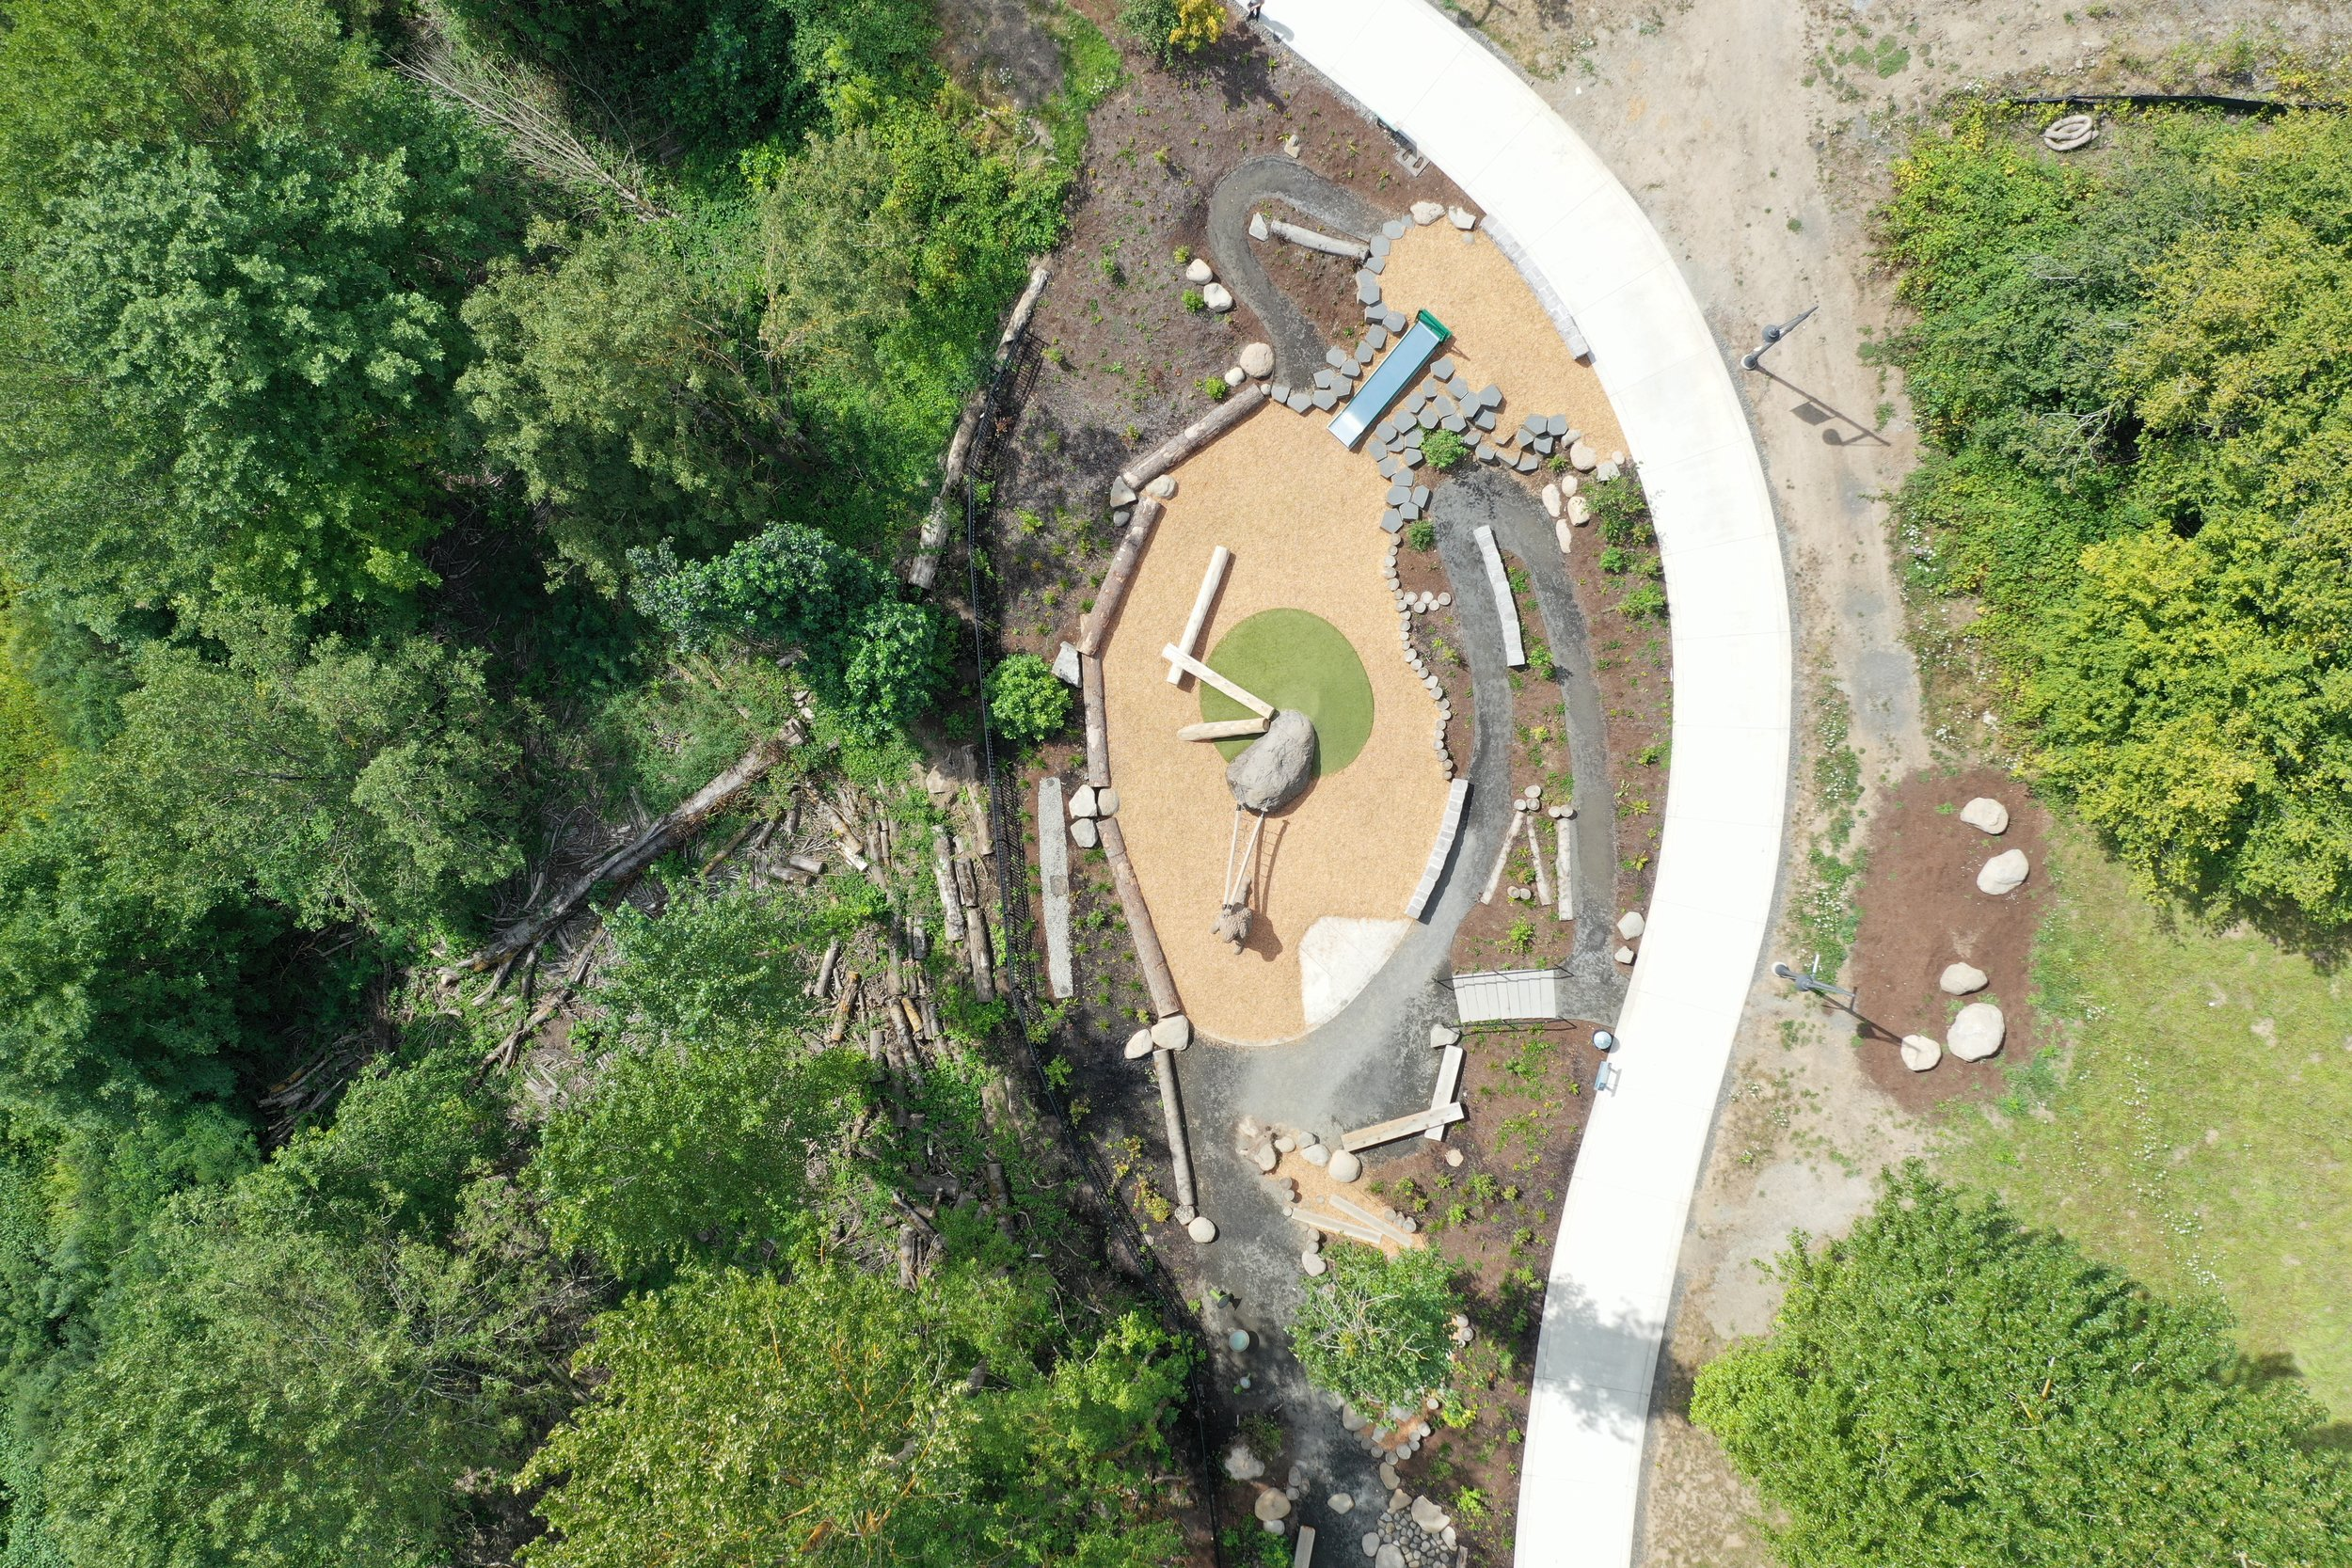 playground, cement pathways, and forest from drone